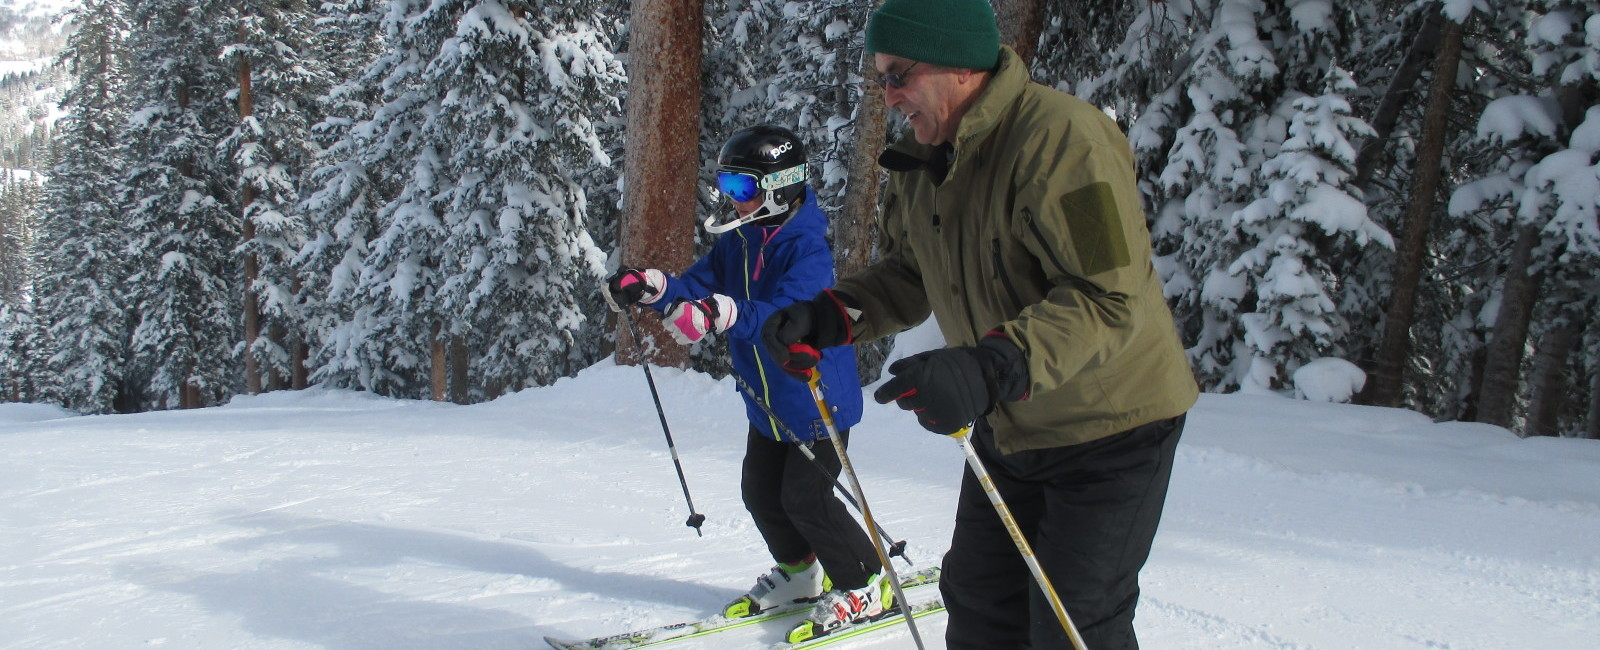 Ski tips for Grandpa-kids do the teaching!